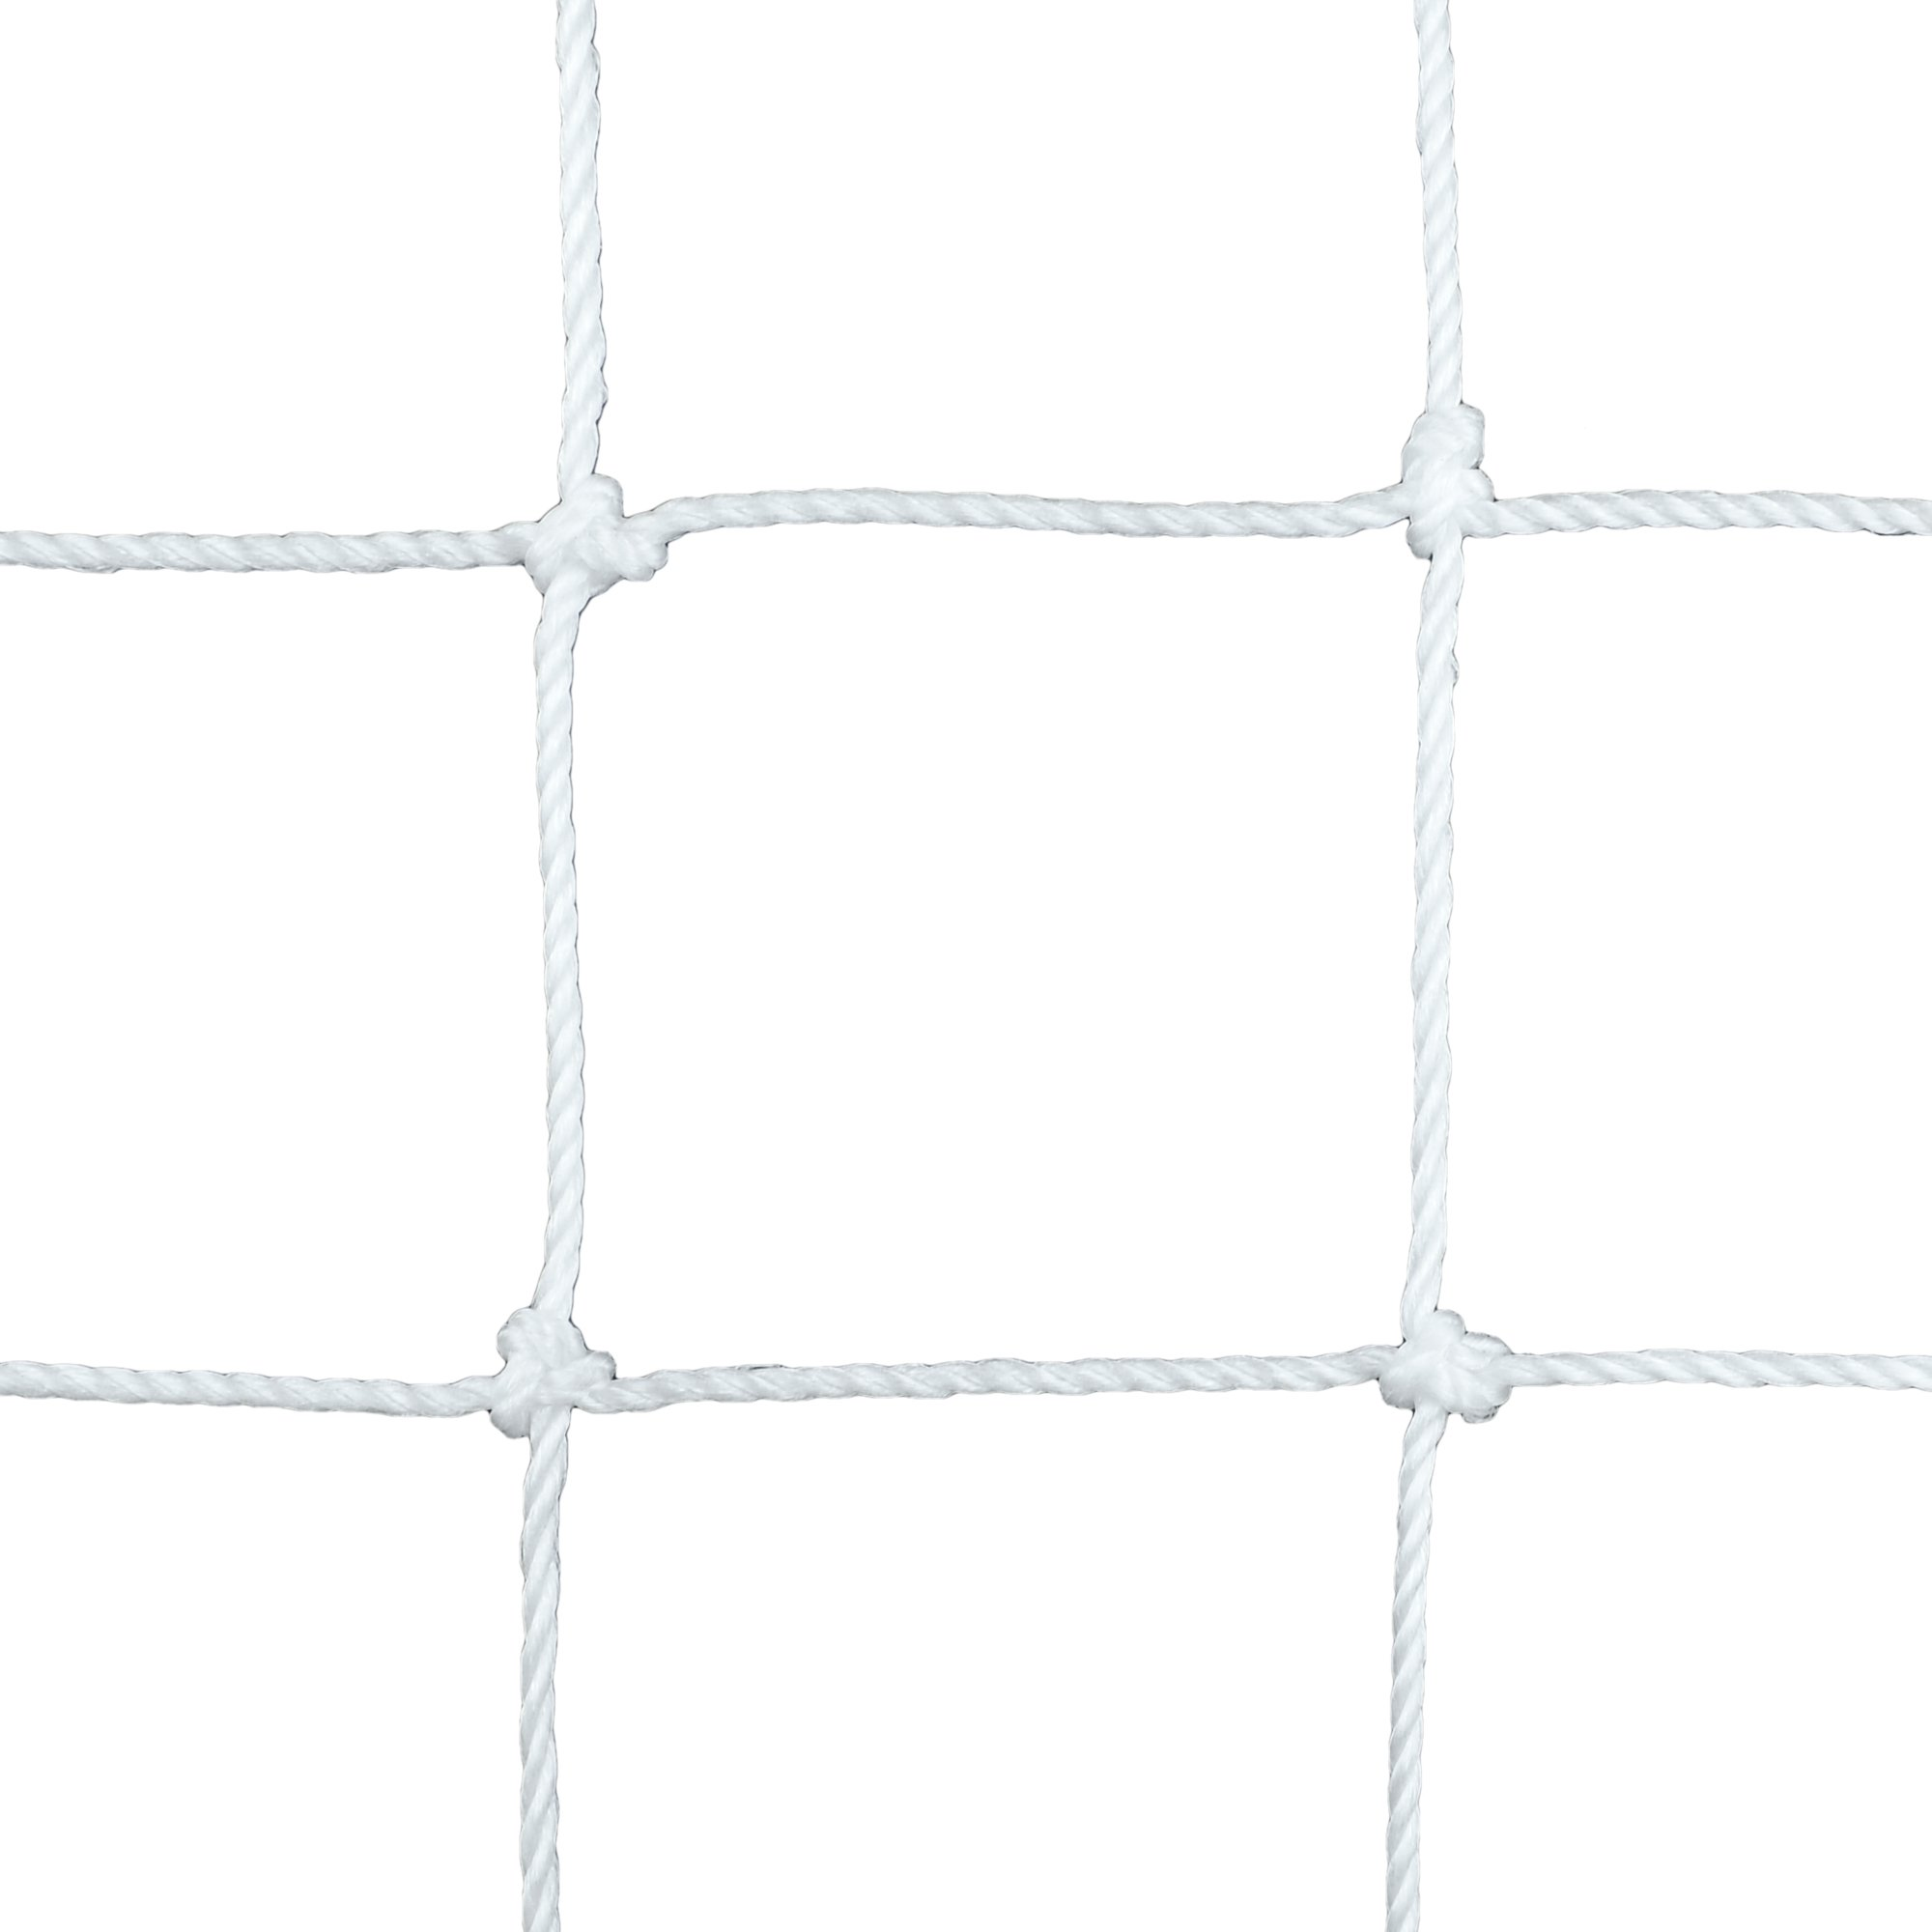 Agora 4mm Nets for 8'x24' Soccer Goals With Depth (Each)